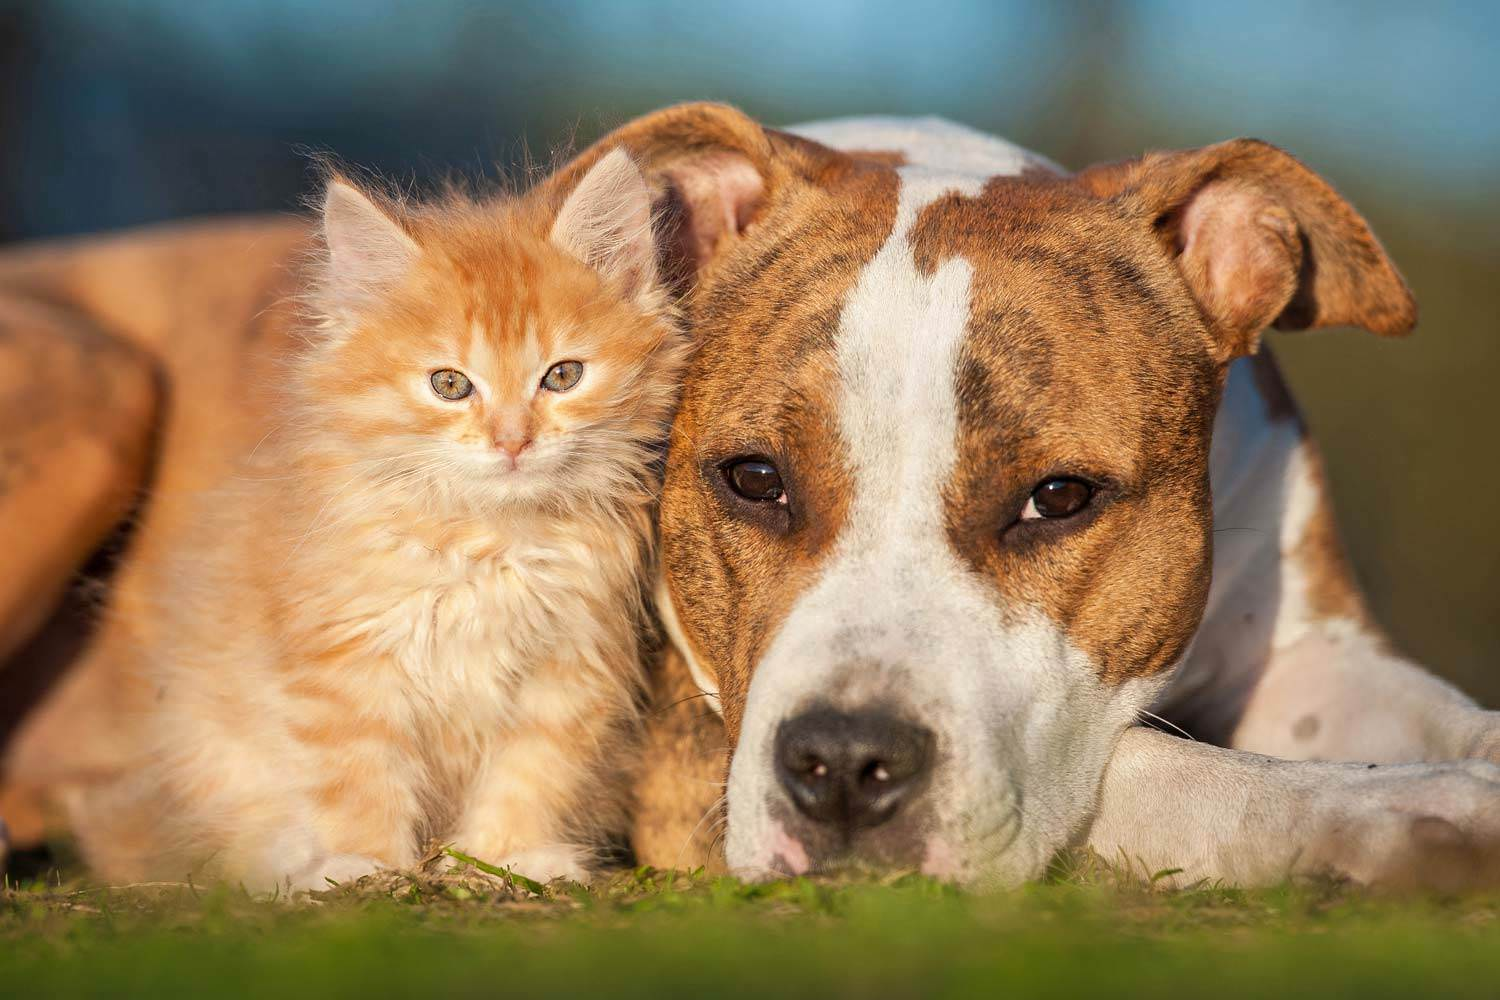 7 Greatest Threats to Your Pet's Health